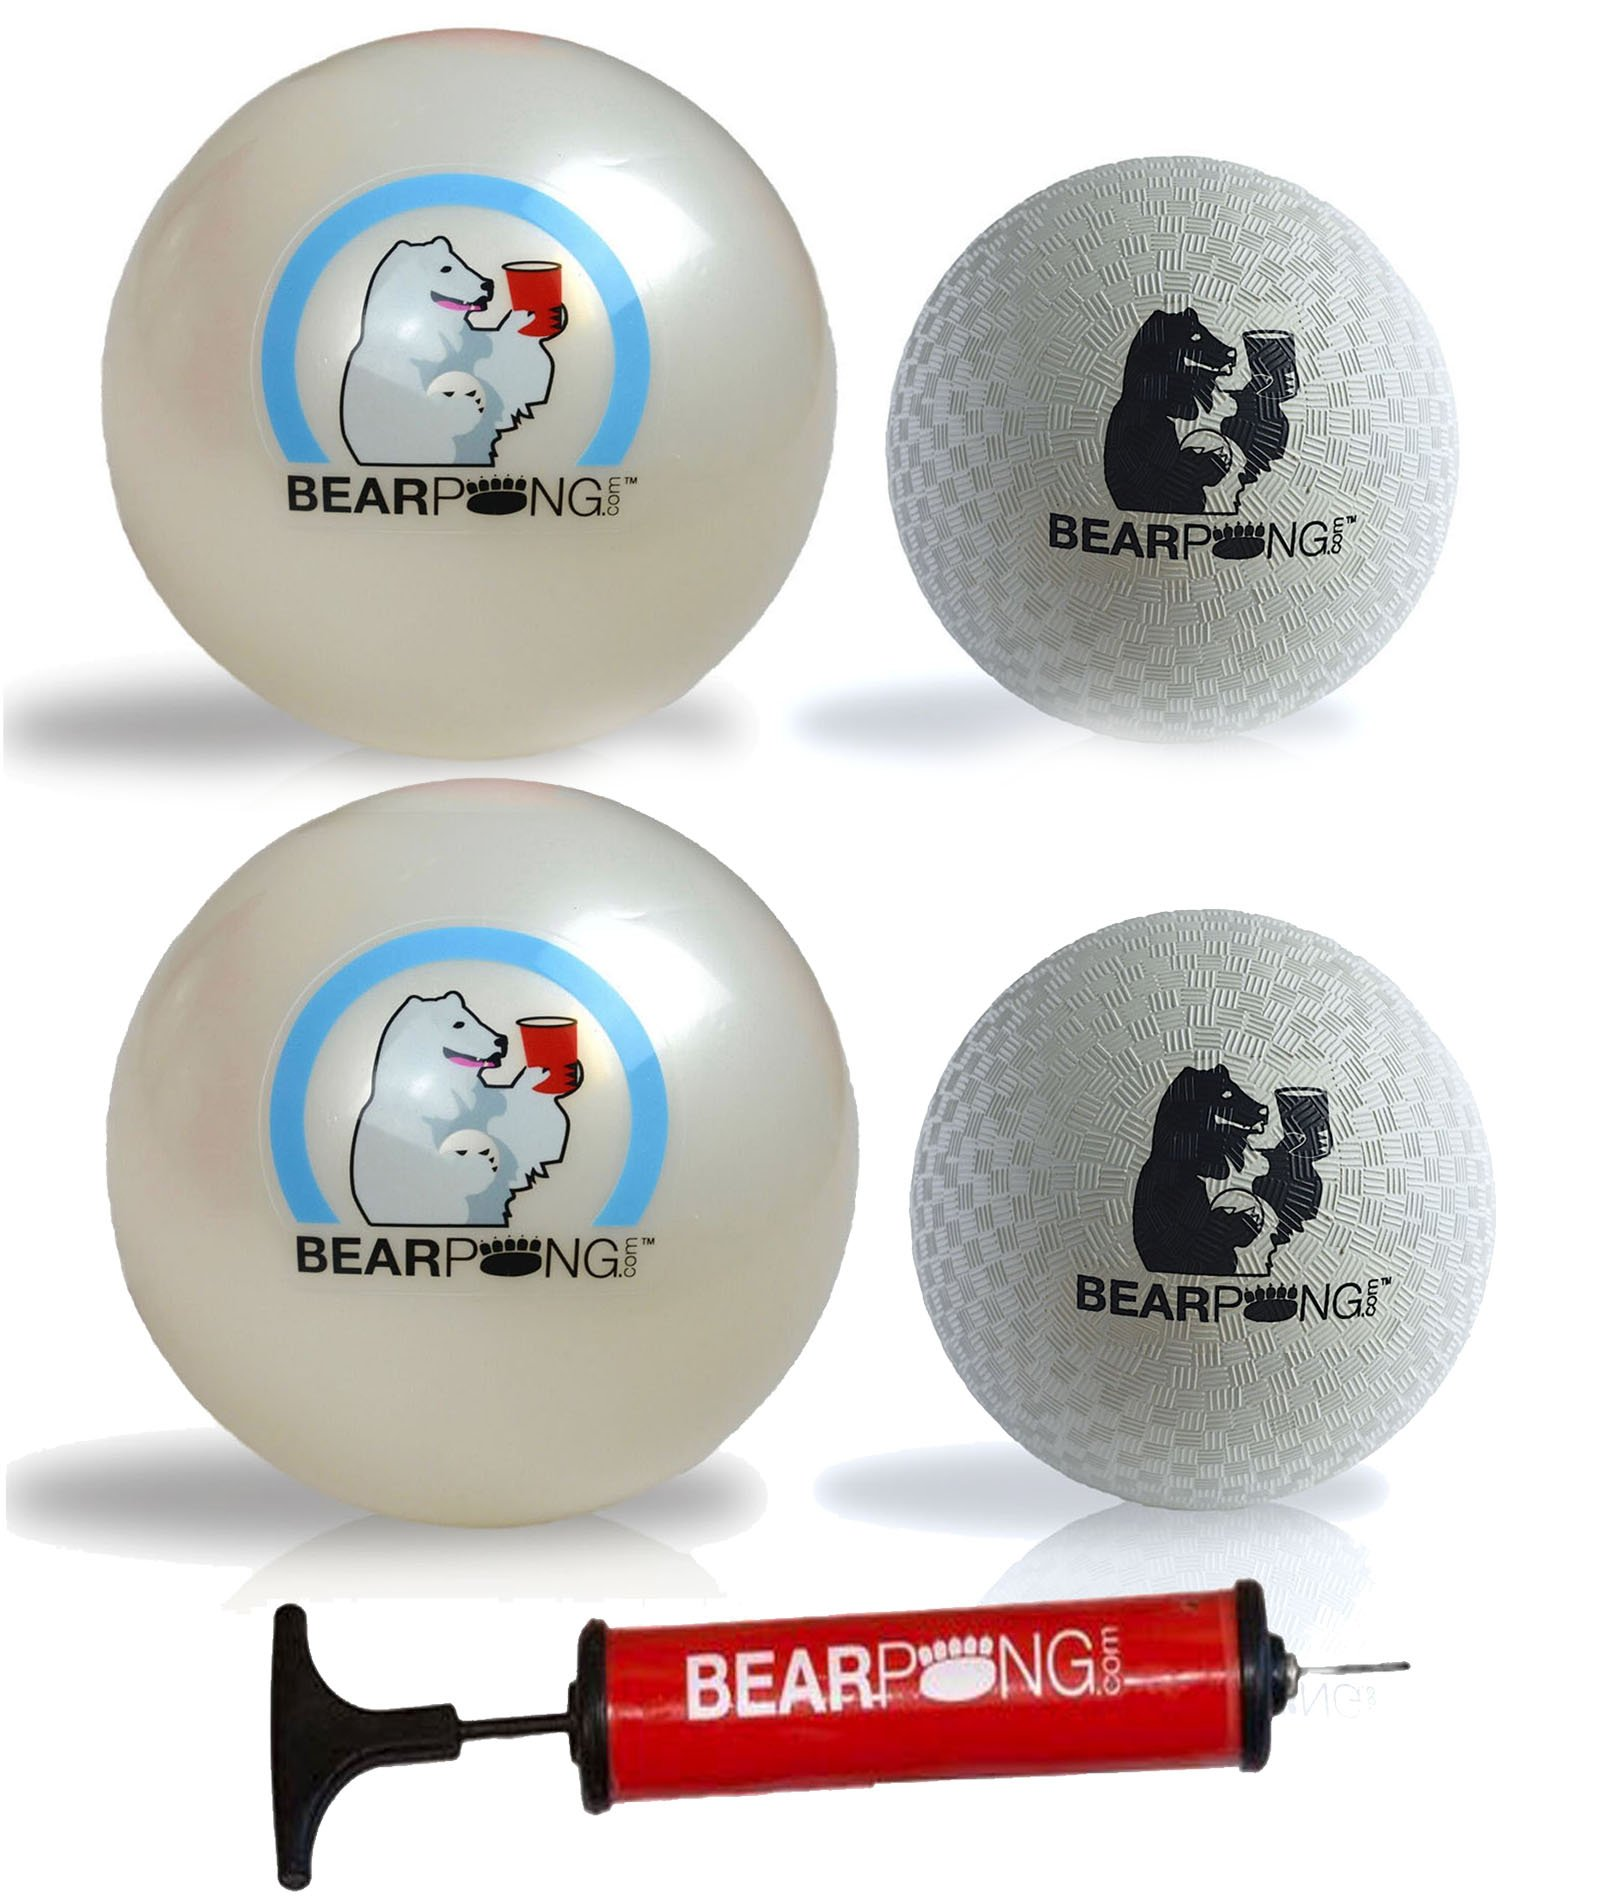 Bearpong Set of 4 Rubber Balls: 2 - 6'' Beach, 2 - 4'' Wind Balls with Pump by Bear Pong